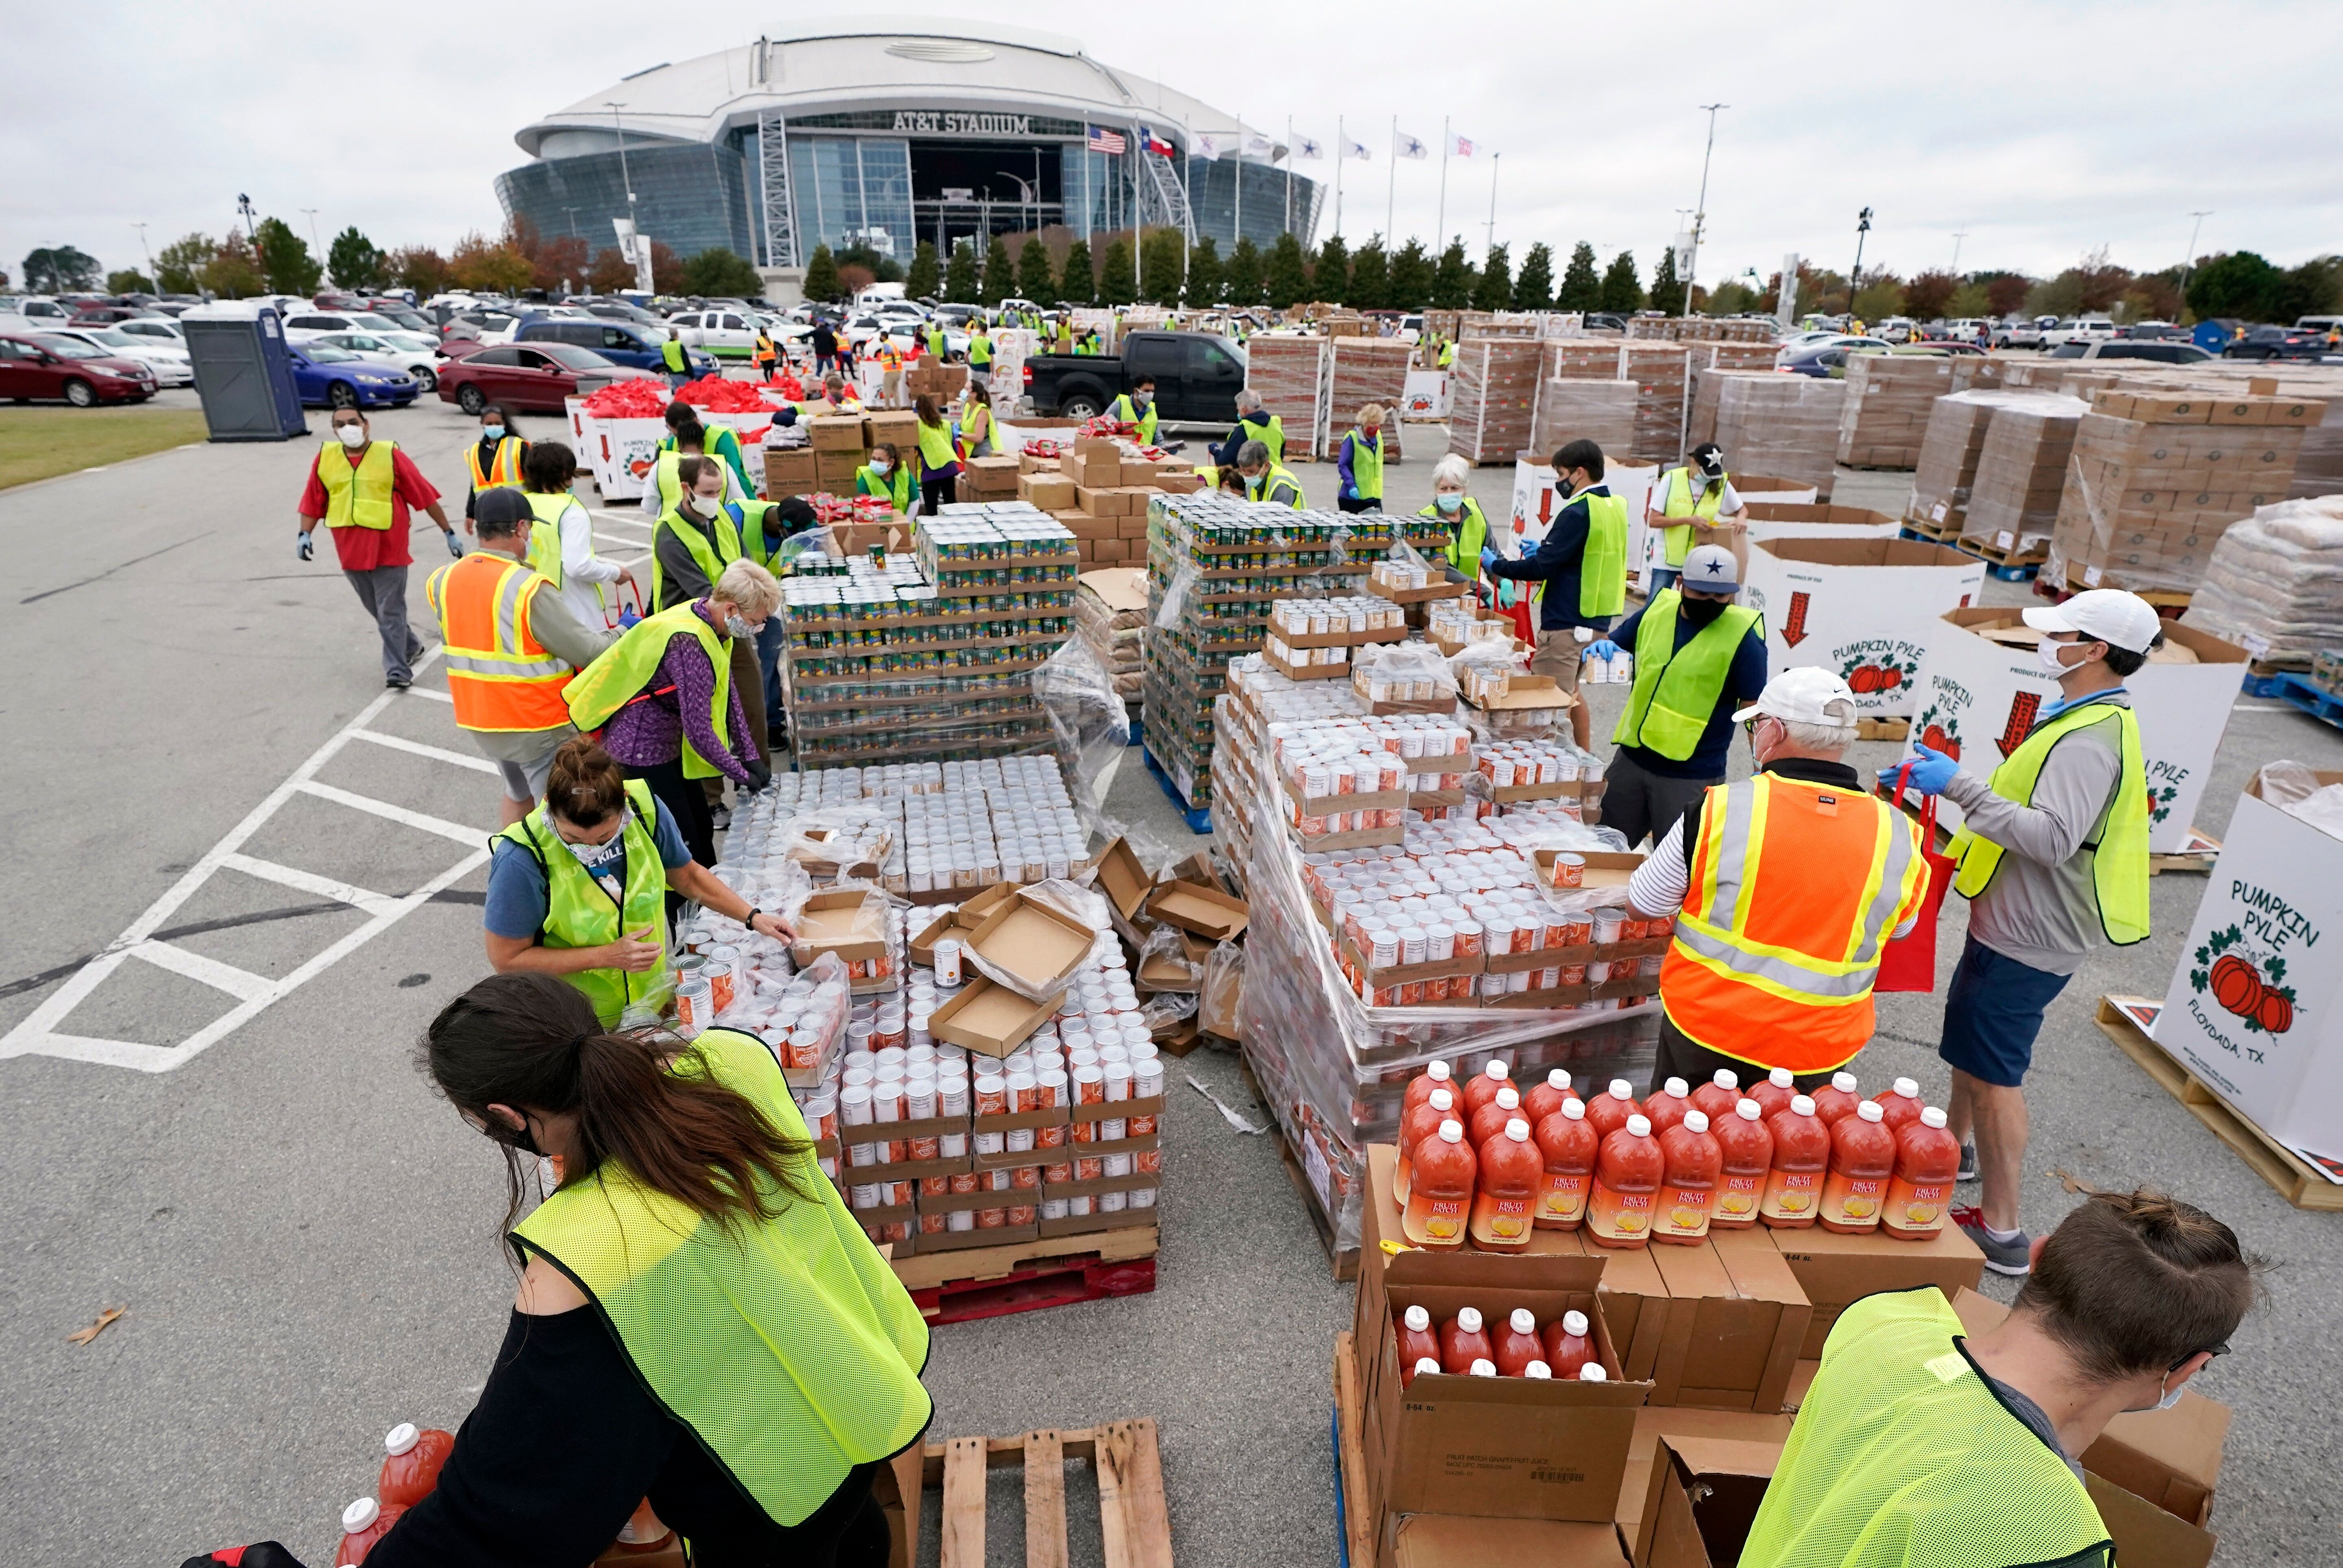 Volunteers build bags of dry goods in a parking lot outside of AT&T Stadium during a Tarrant Area Food Bank mobile pantry dis